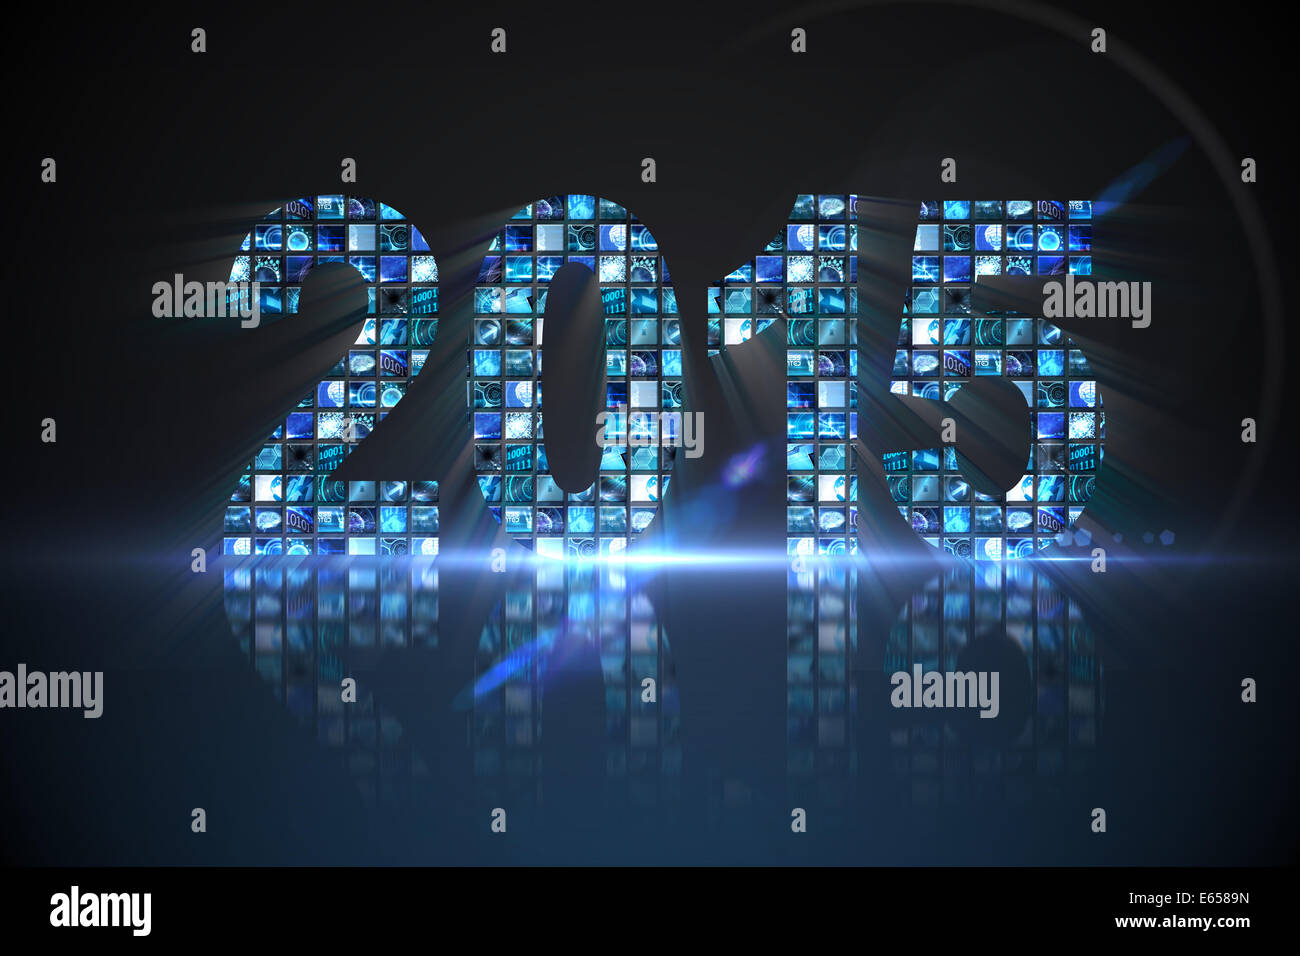 2015 made of digital screens in blue - Stock Image